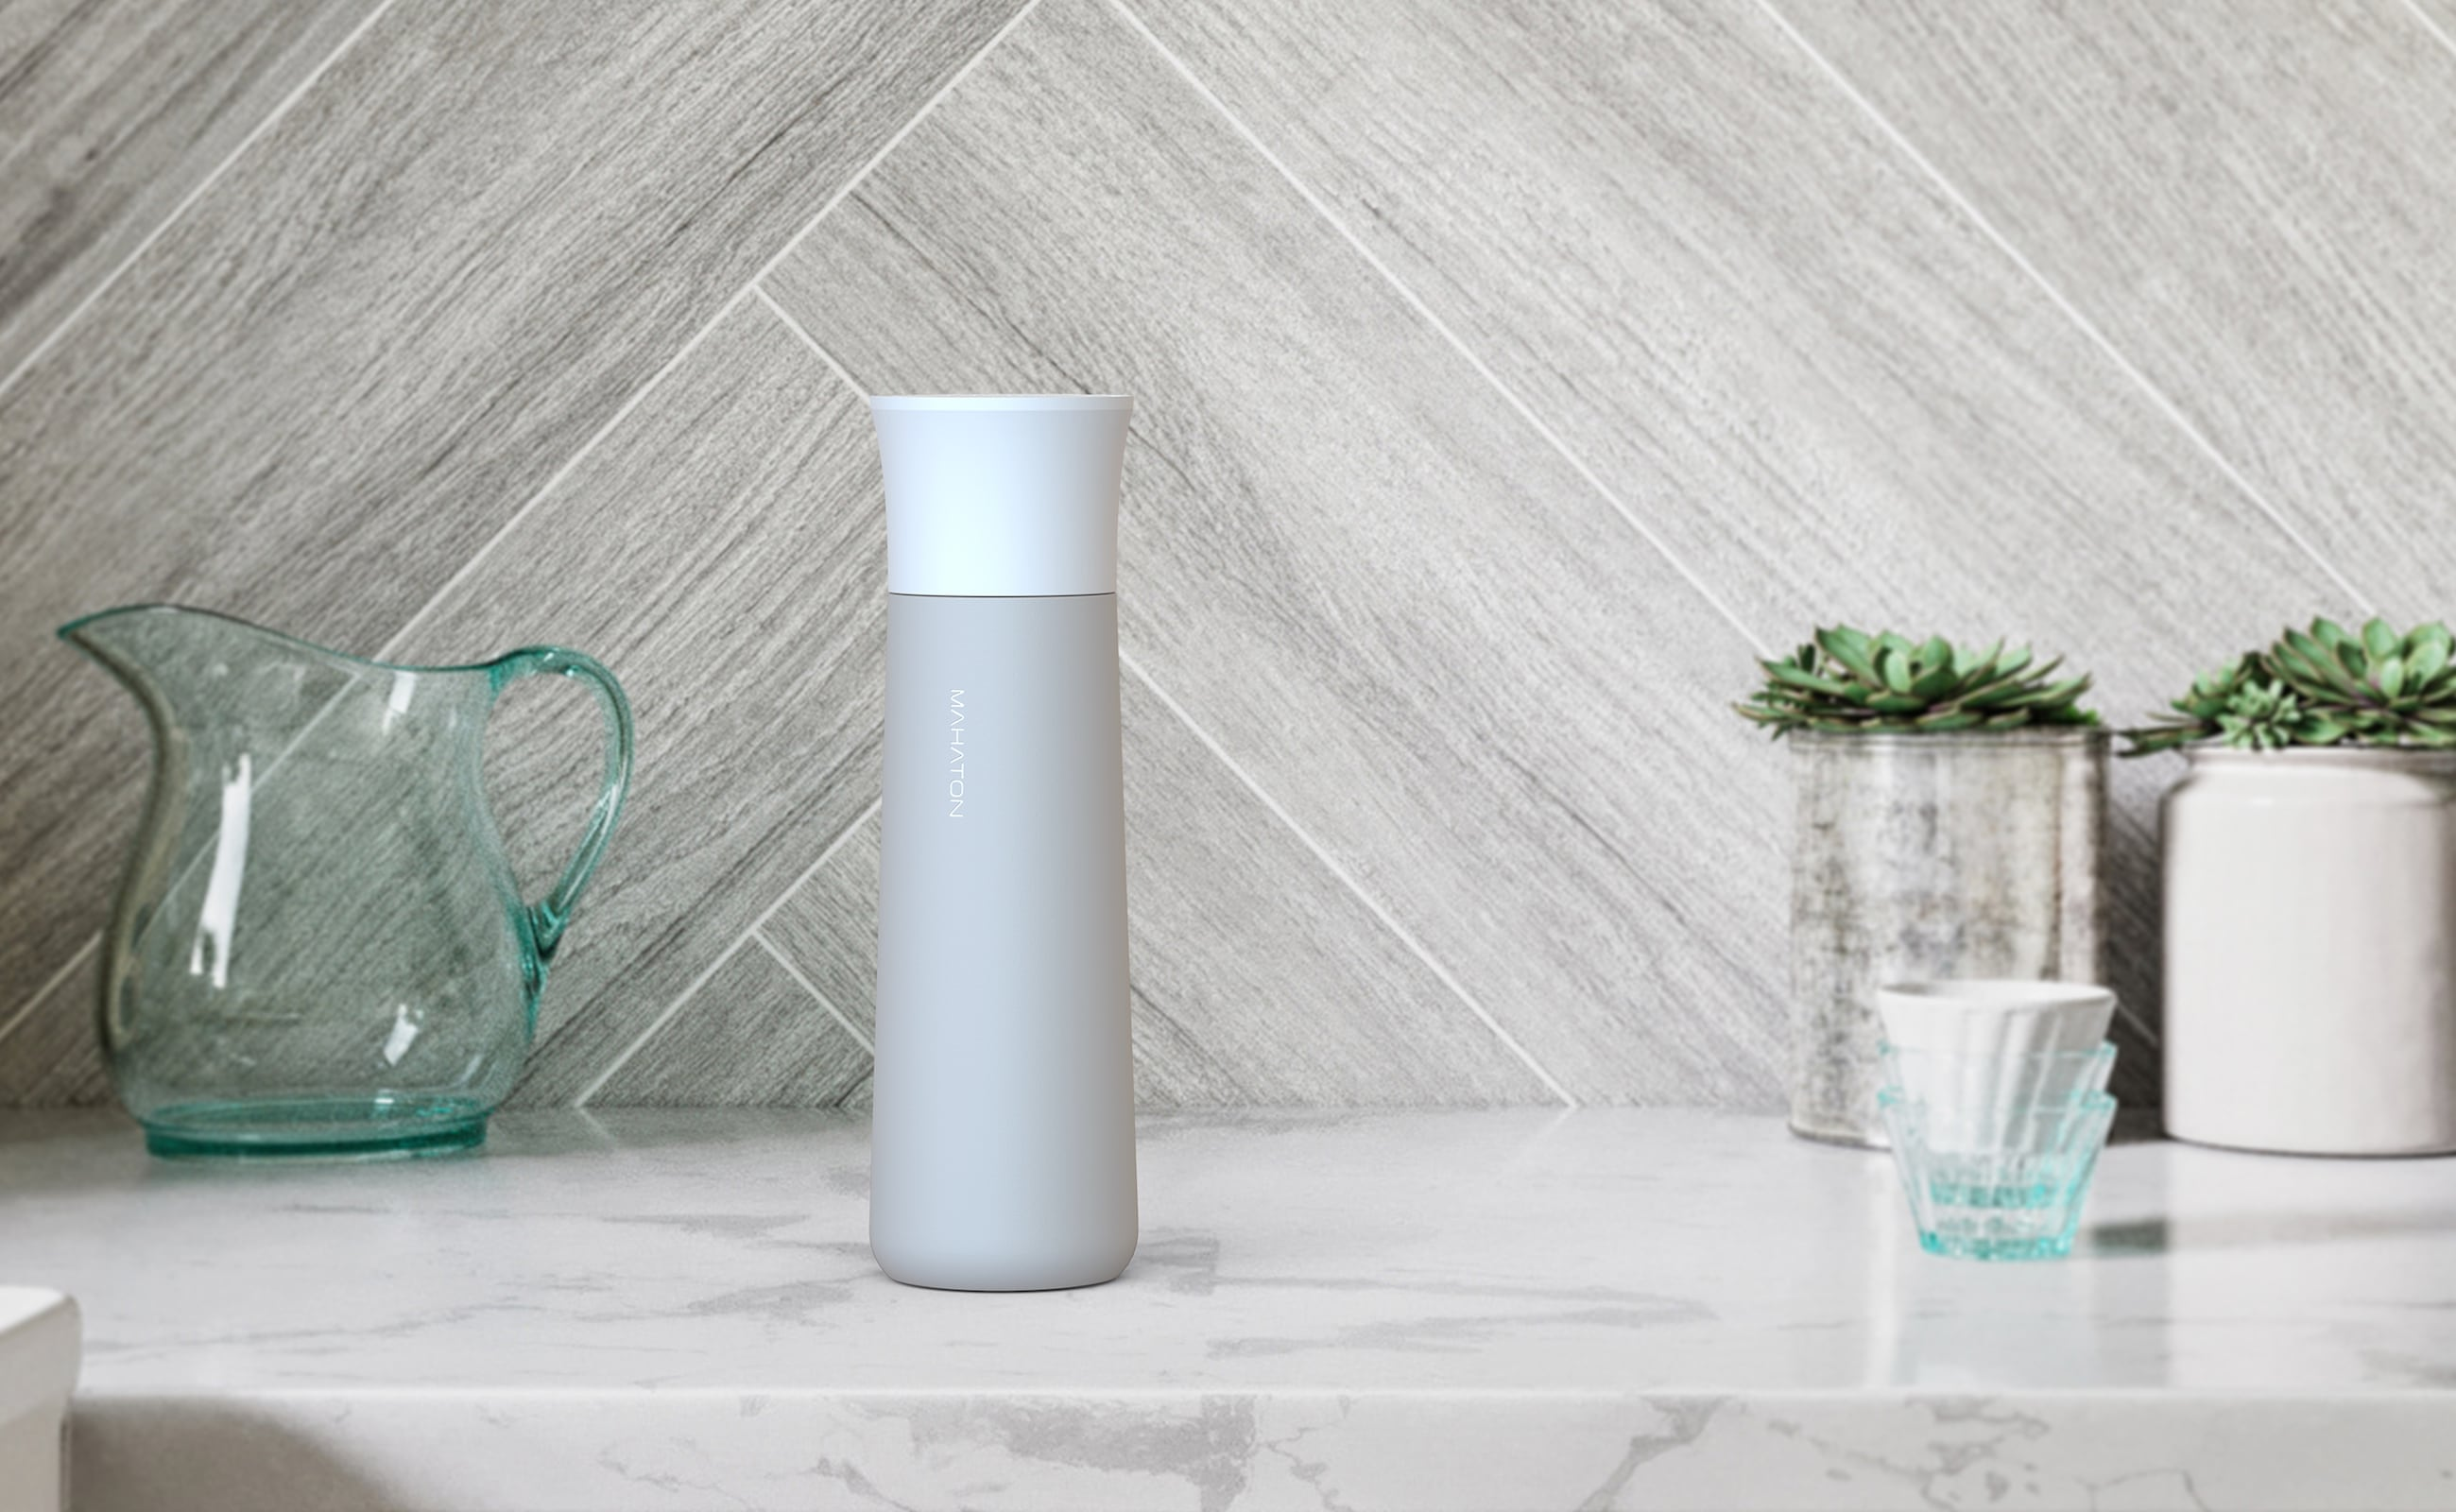 Mahaton Wireless Self-Cleaning Water Bottle ensures your water is always clean enough to drink